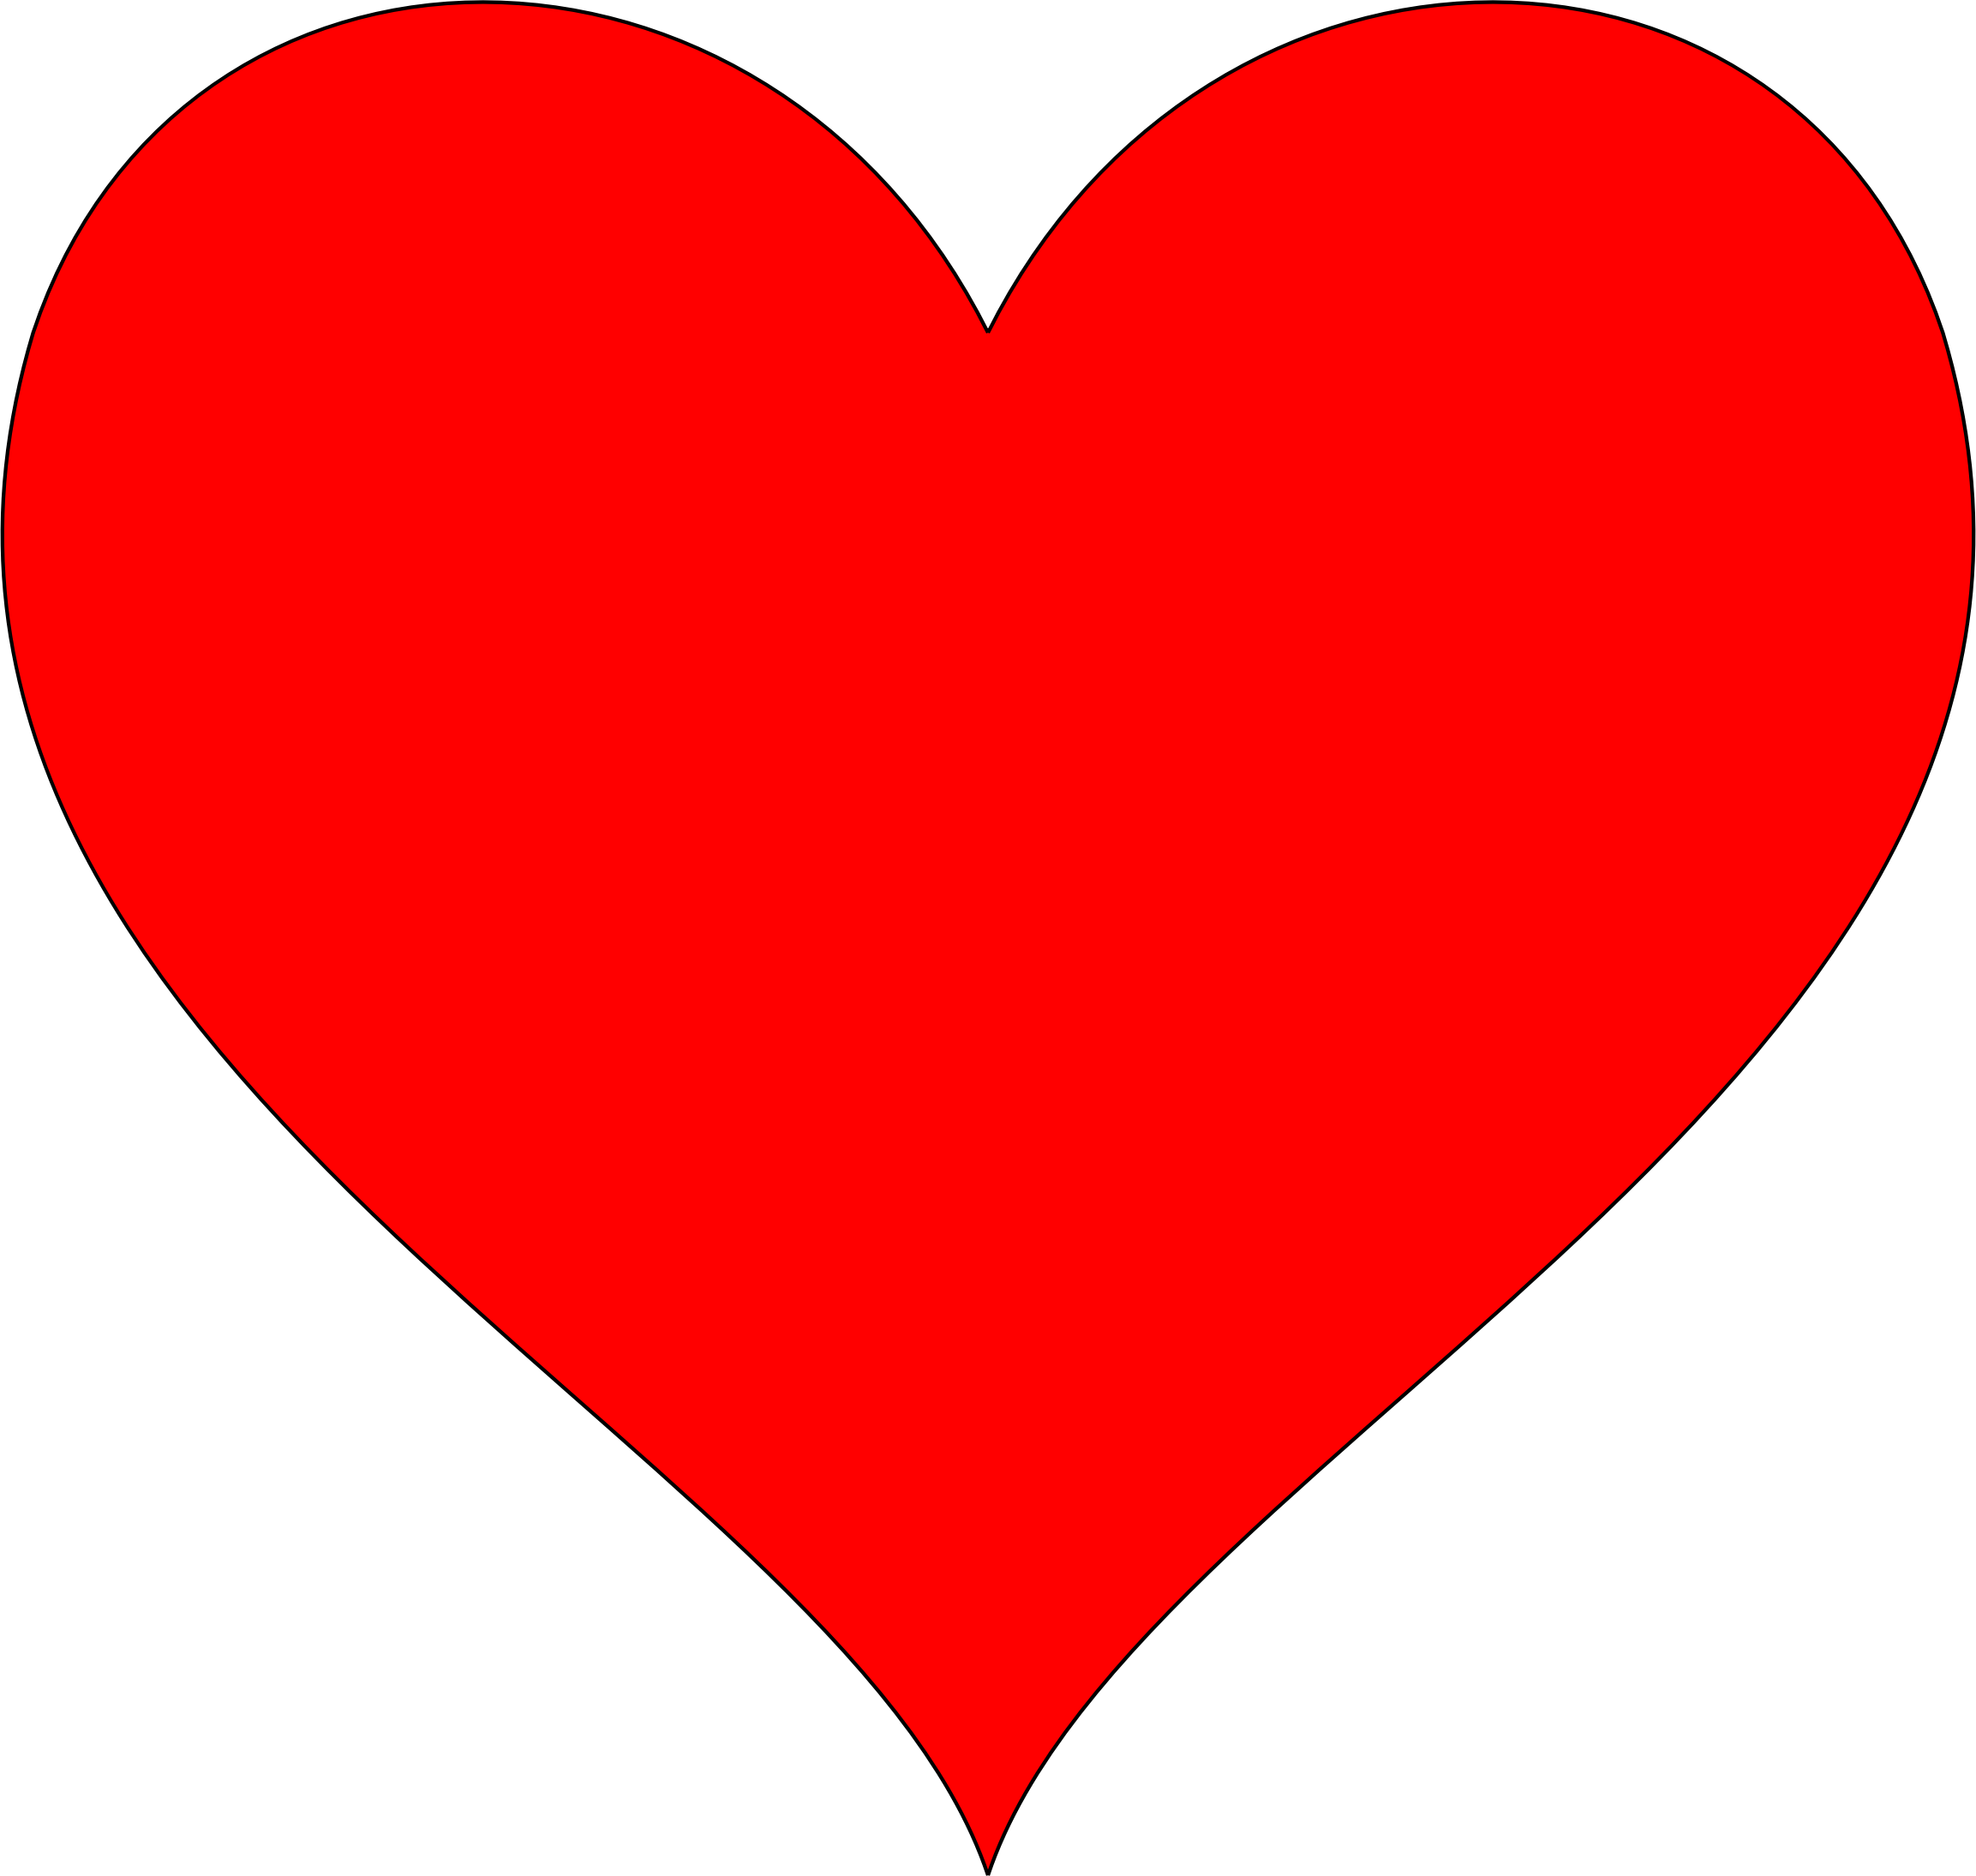 Hearts clipart joined JayNick Beating Beating Heart Clipart